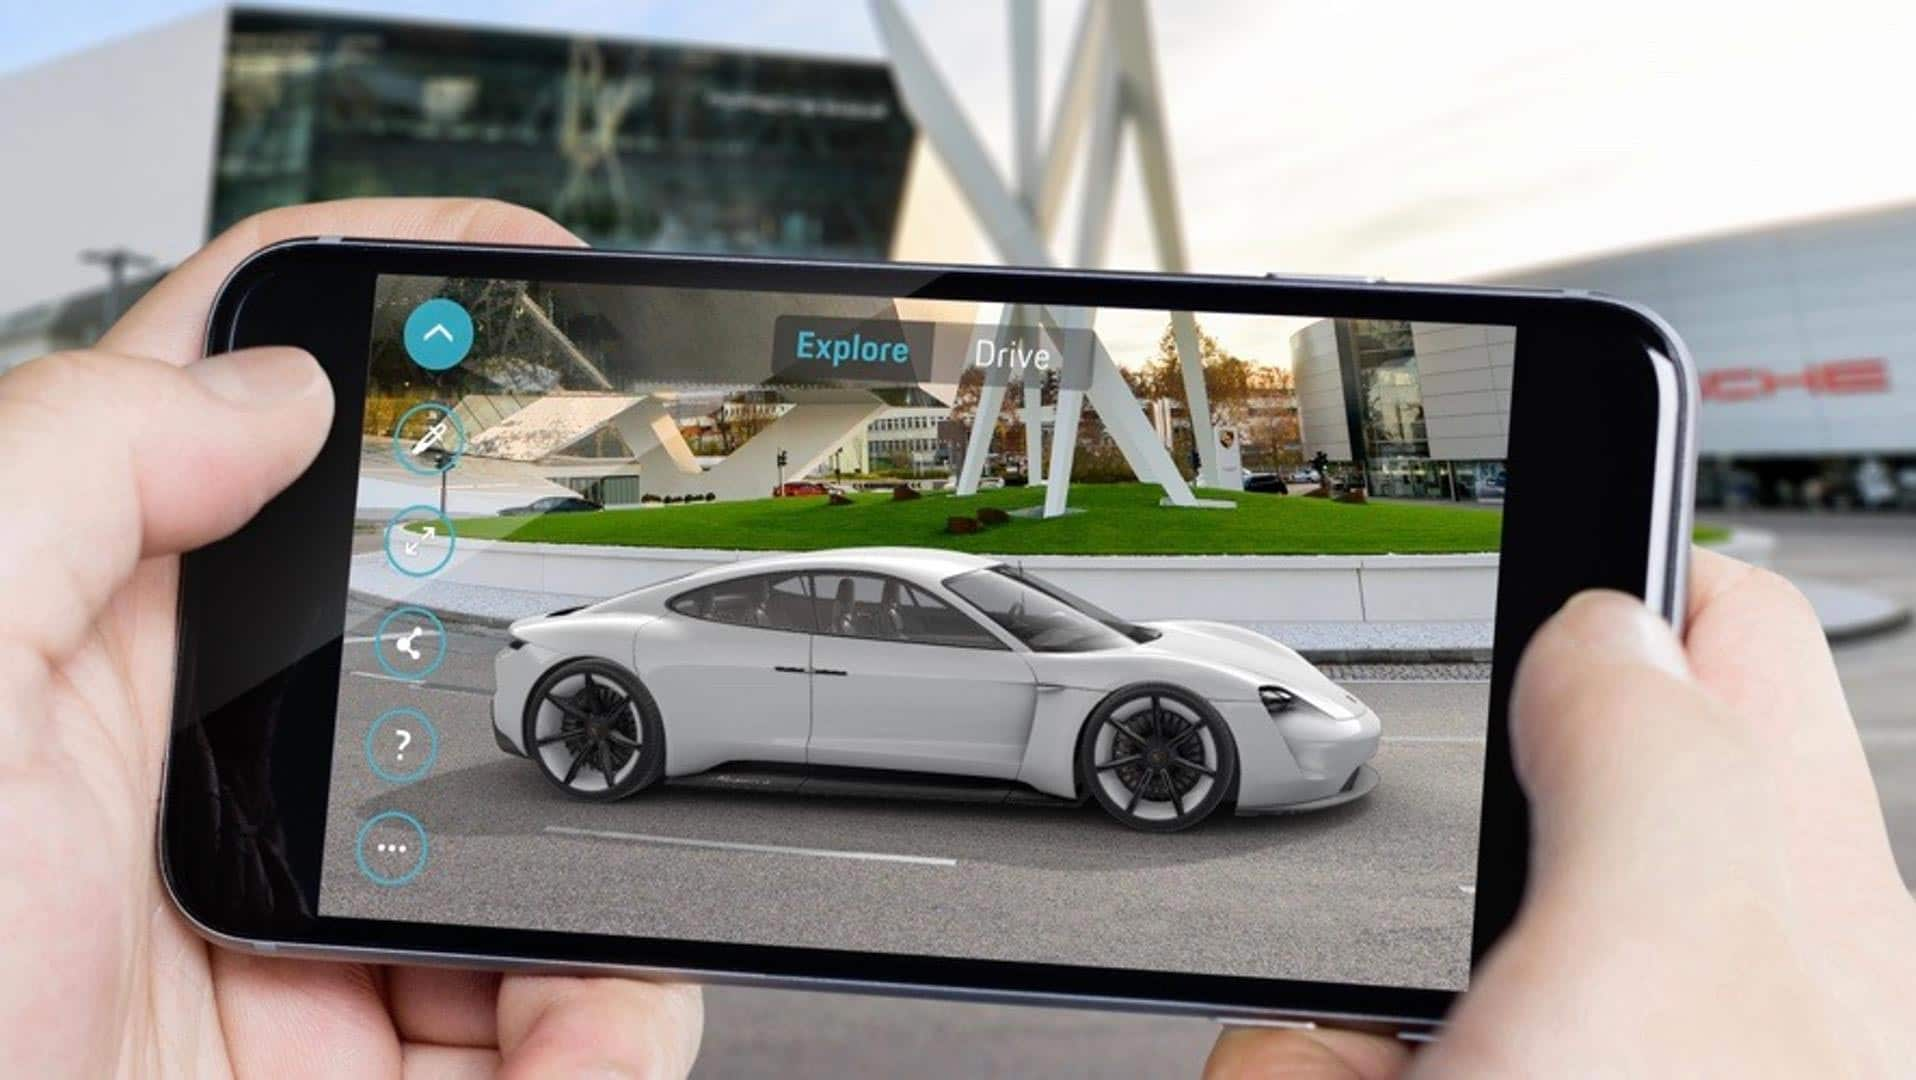 Augmented Reality Helps Experts Share Porsche Information